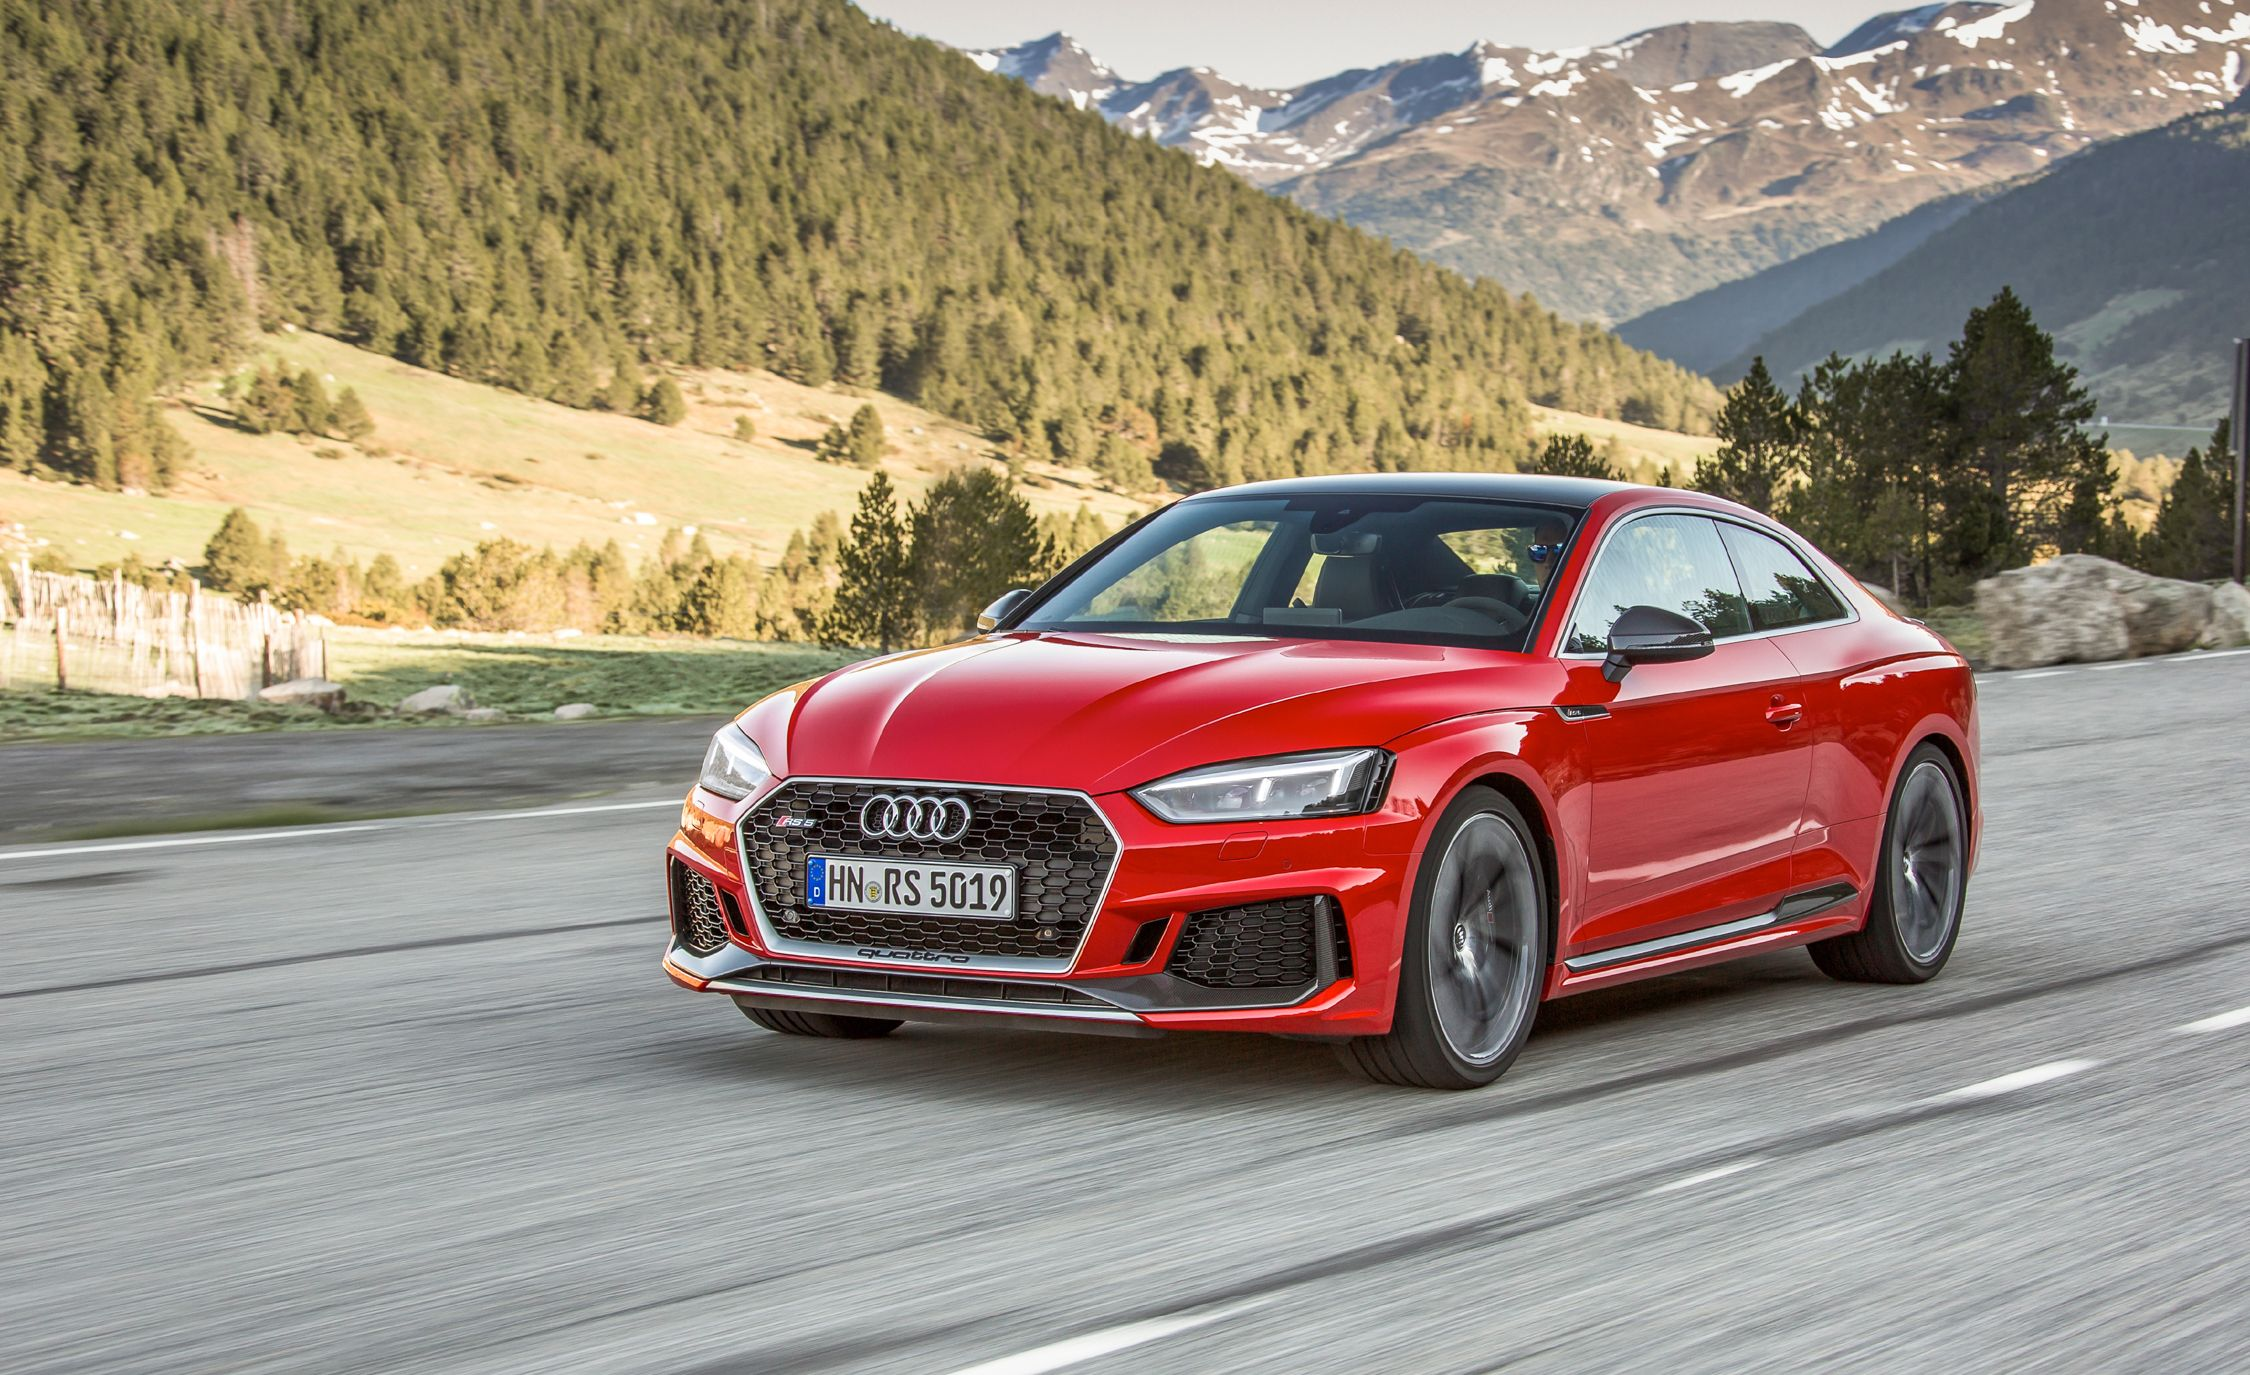 כולם חדשים 2019 Audi RS5 Reviews | Audi RS5 Price, Photos, and Specs | Car ME-41